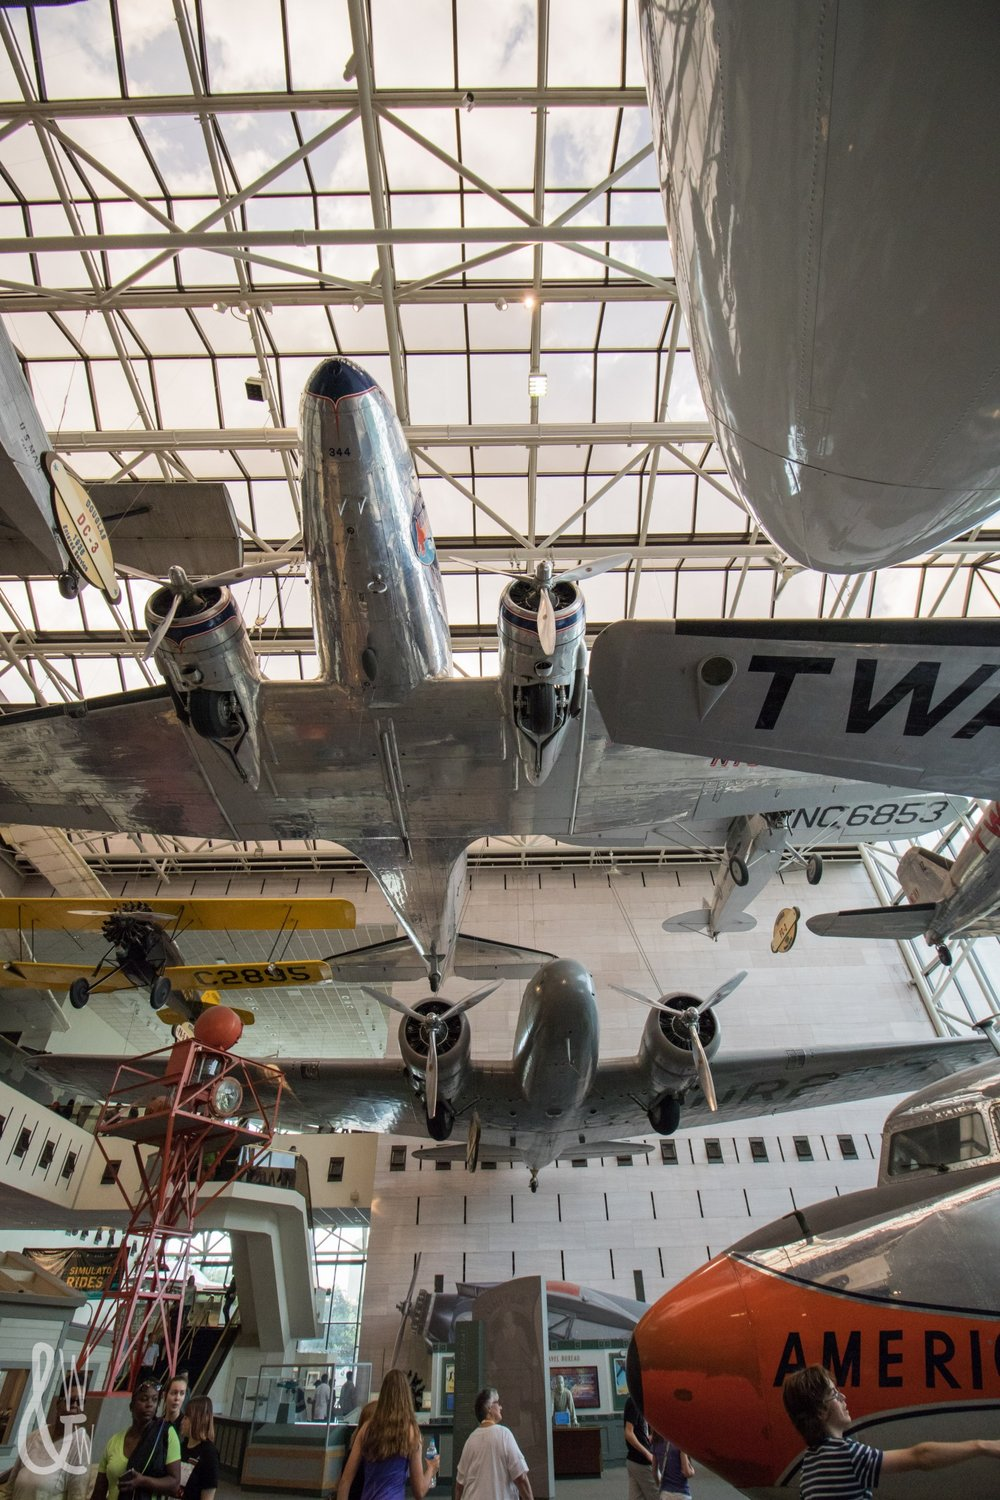 Planes suspended in the National Air & Space Museum.